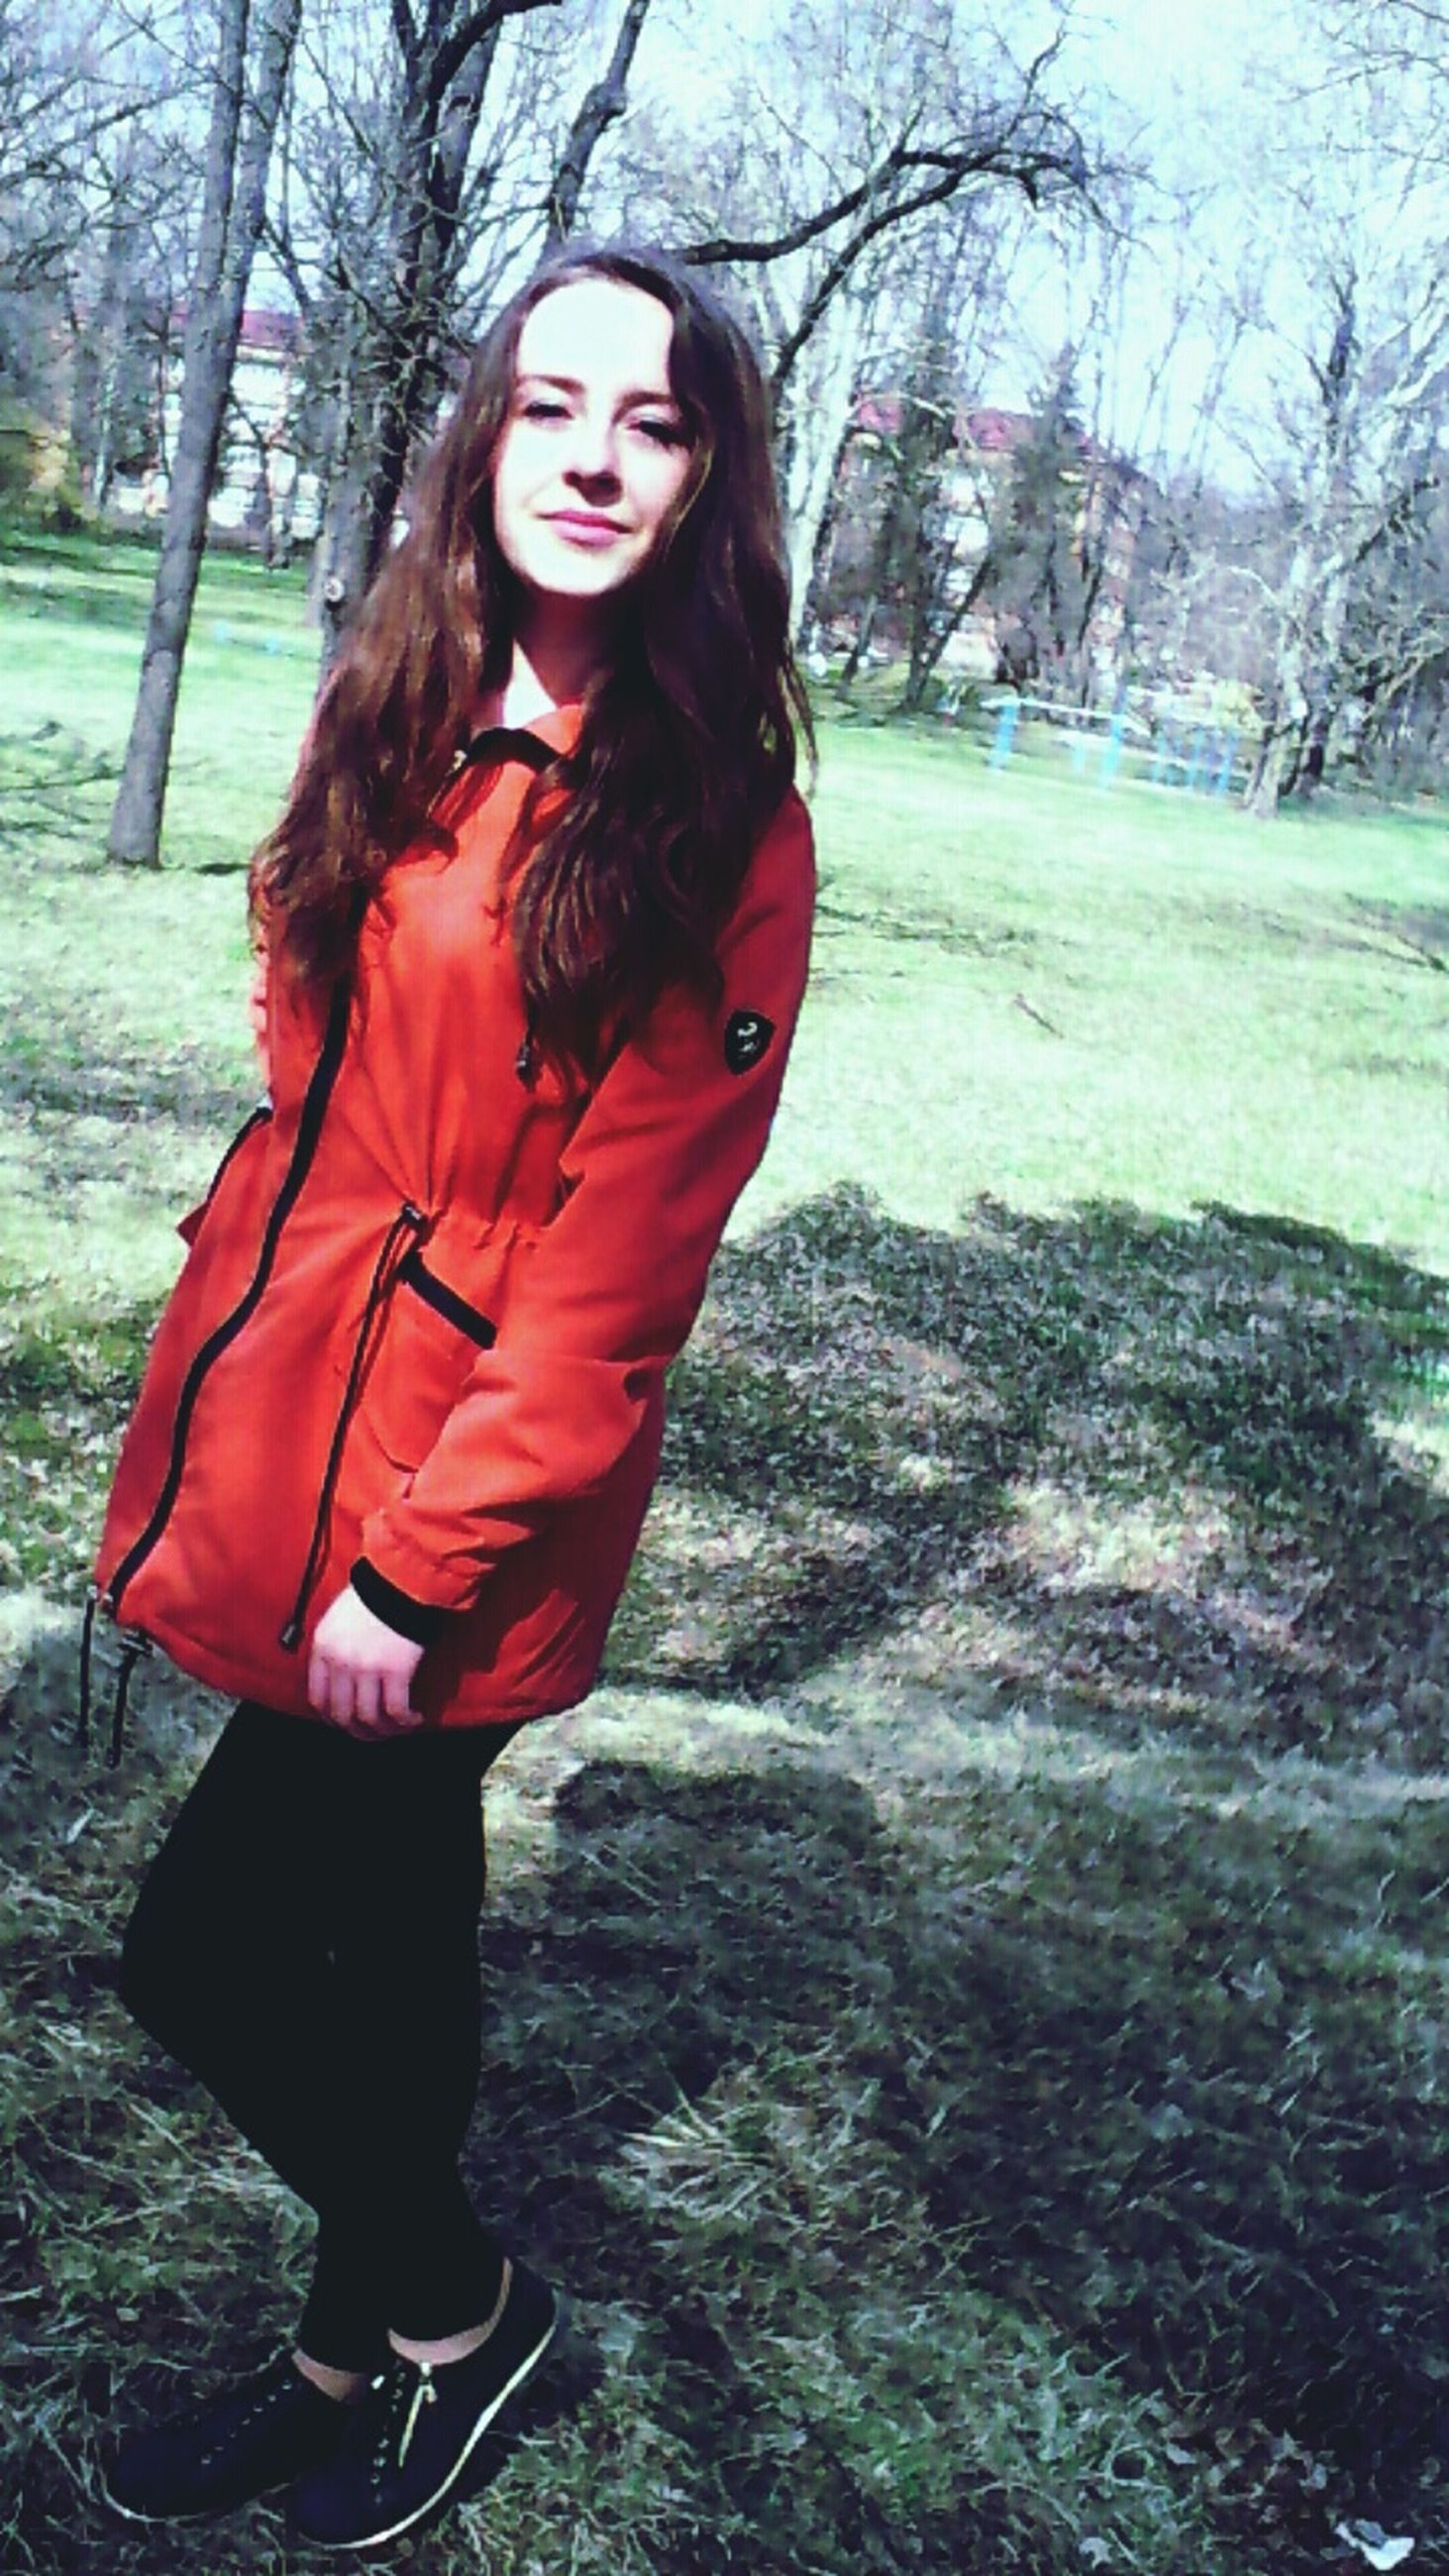 young adult, tree, lifestyles, young women, person, casual clothing, front view, leisure activity, looking at camera, portrait, red, standing, long hair, full length, tree trunk, jacket, forest